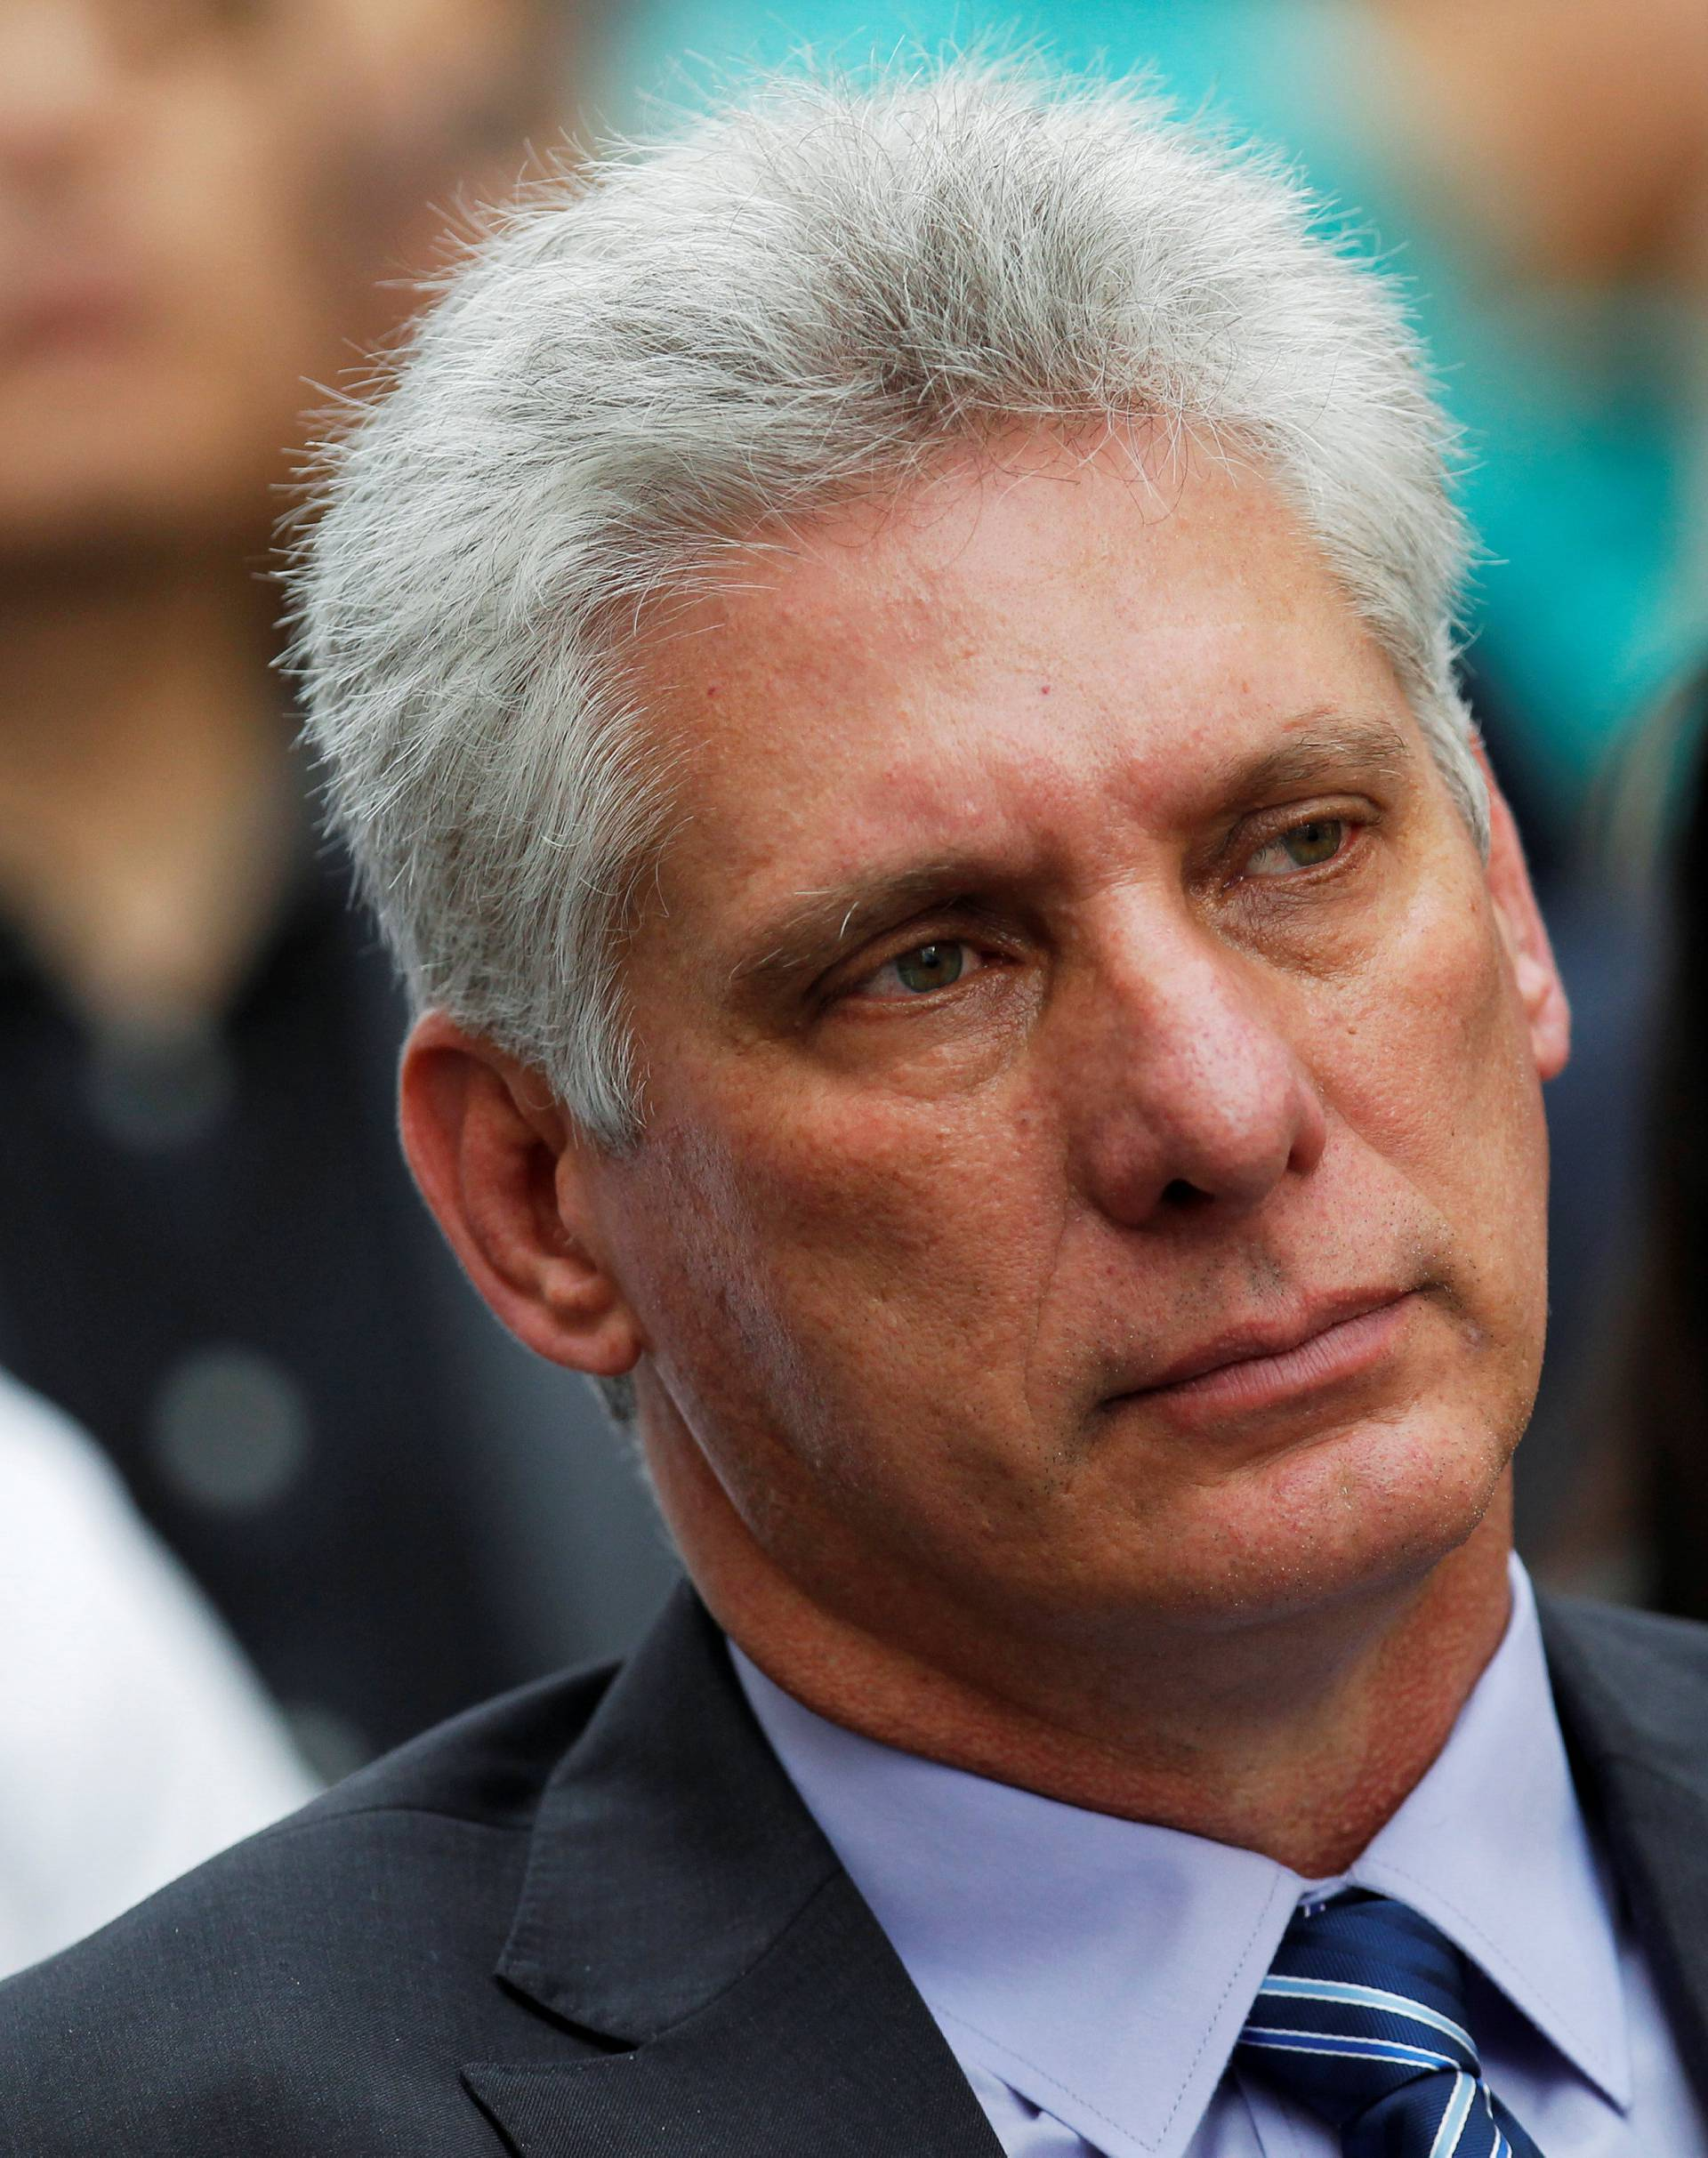 Cuba's First Vice-President Diaz-Canel attends the opening of the Havana International Book Fair, in Havana